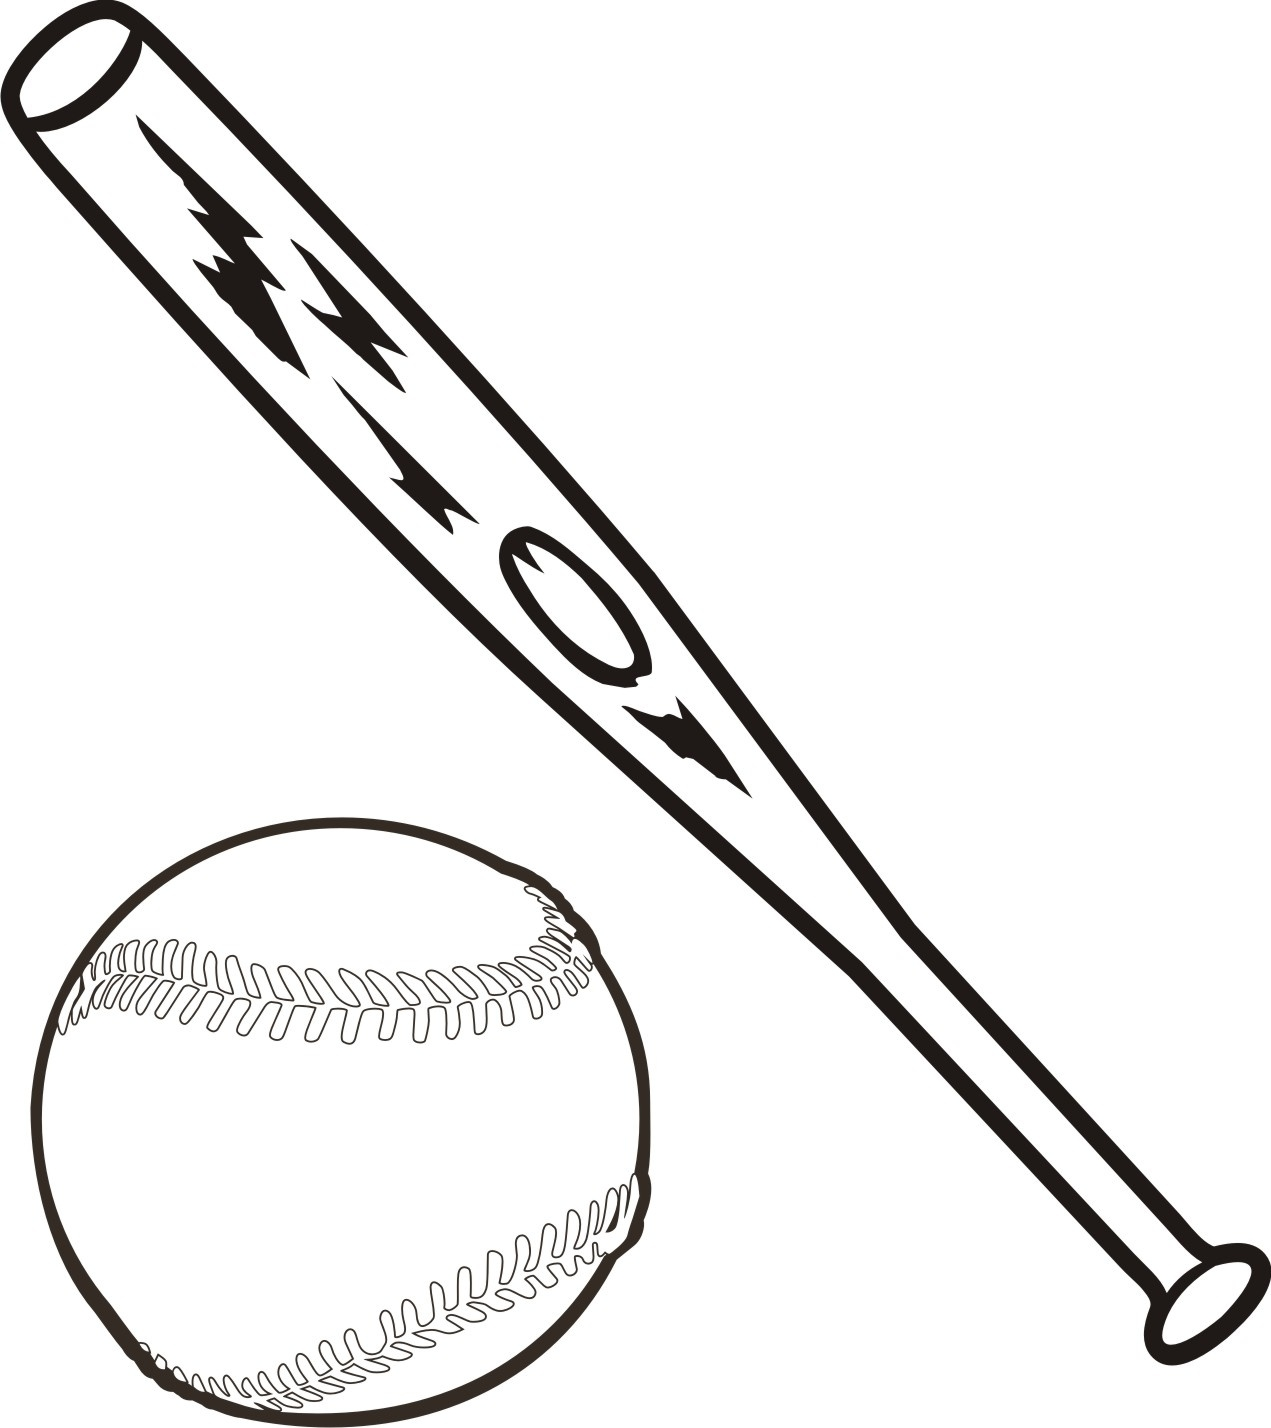 1271x1428 Crossed Baseball Bats Clipart Black And White Letters Example